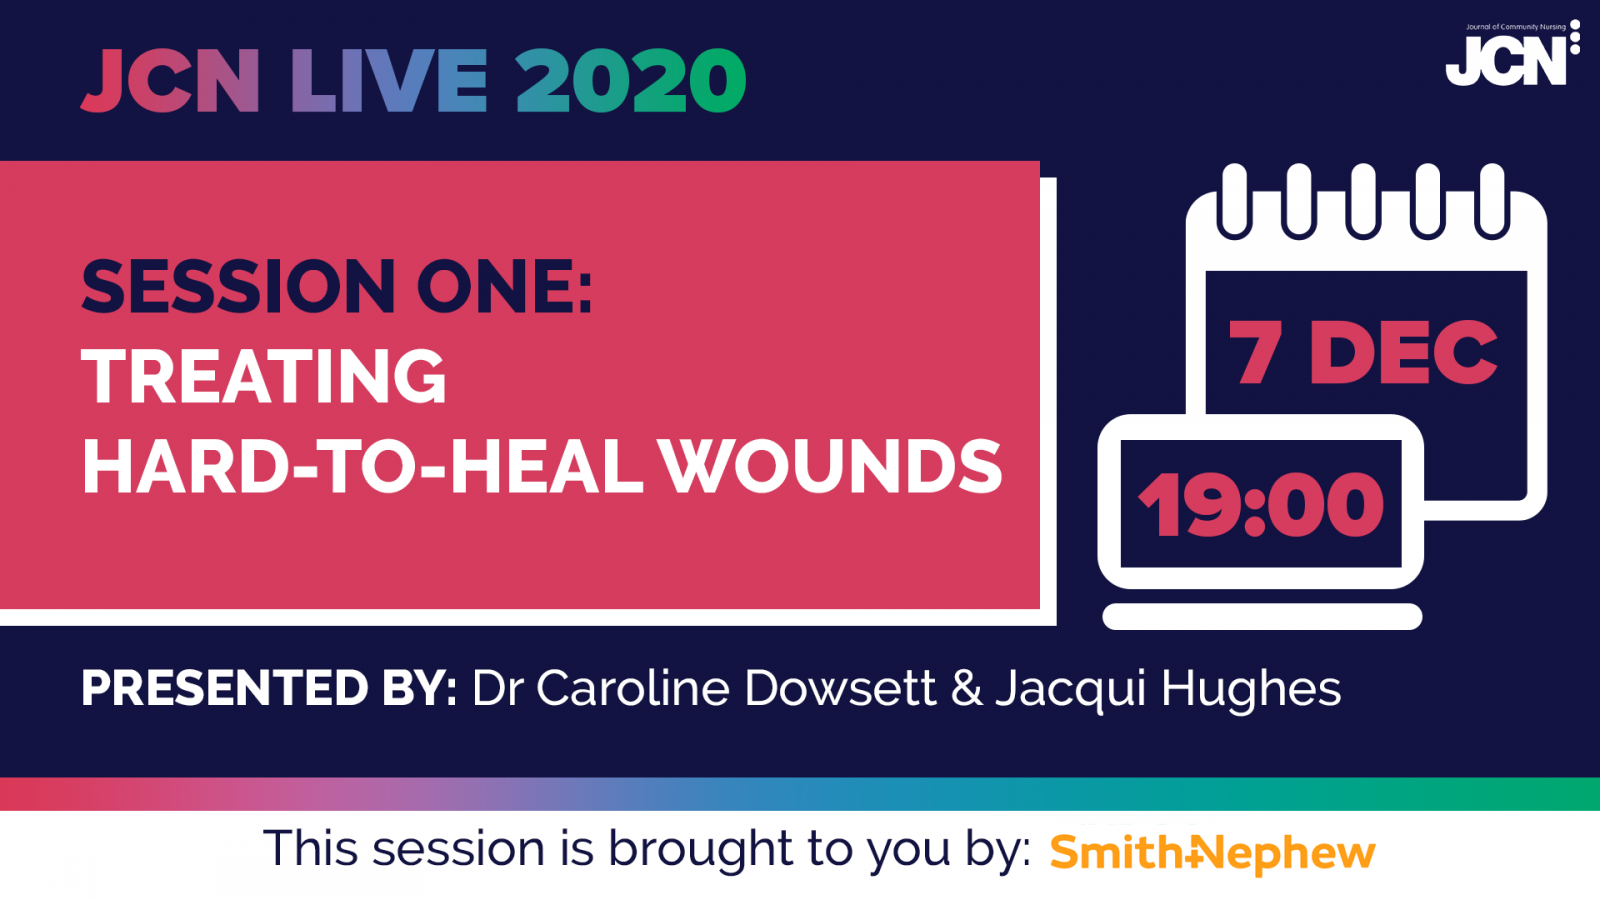 JCN Live 2020 - Treating hard-to-heal wounds